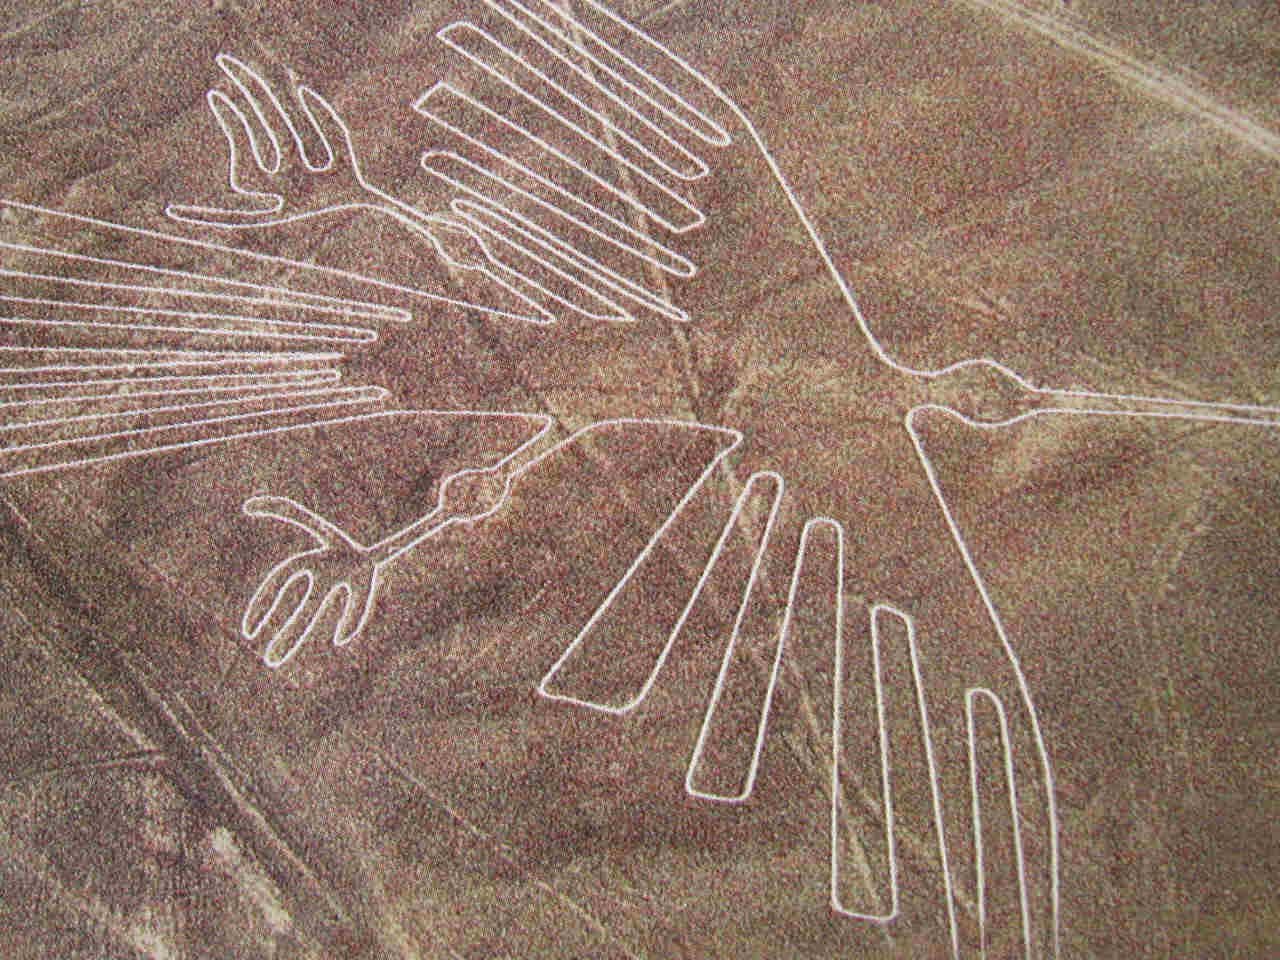 How the Nazca Lines Were Made